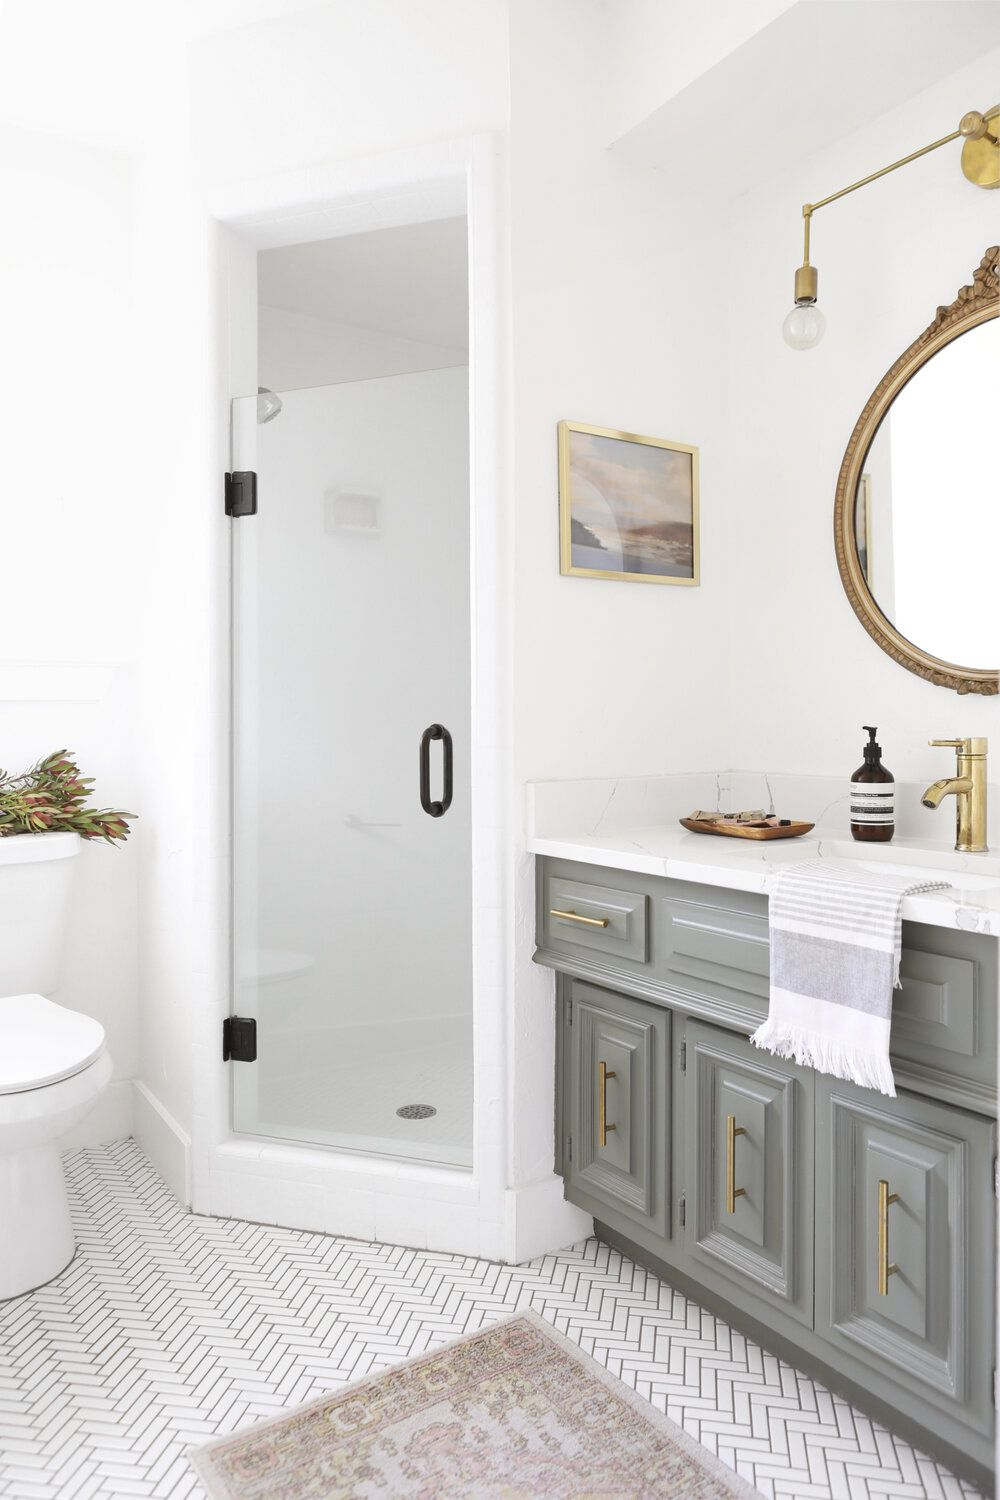 A small primary bathroom with an ornate gold statement mirror, a striking wall sconce, and gray cabinets